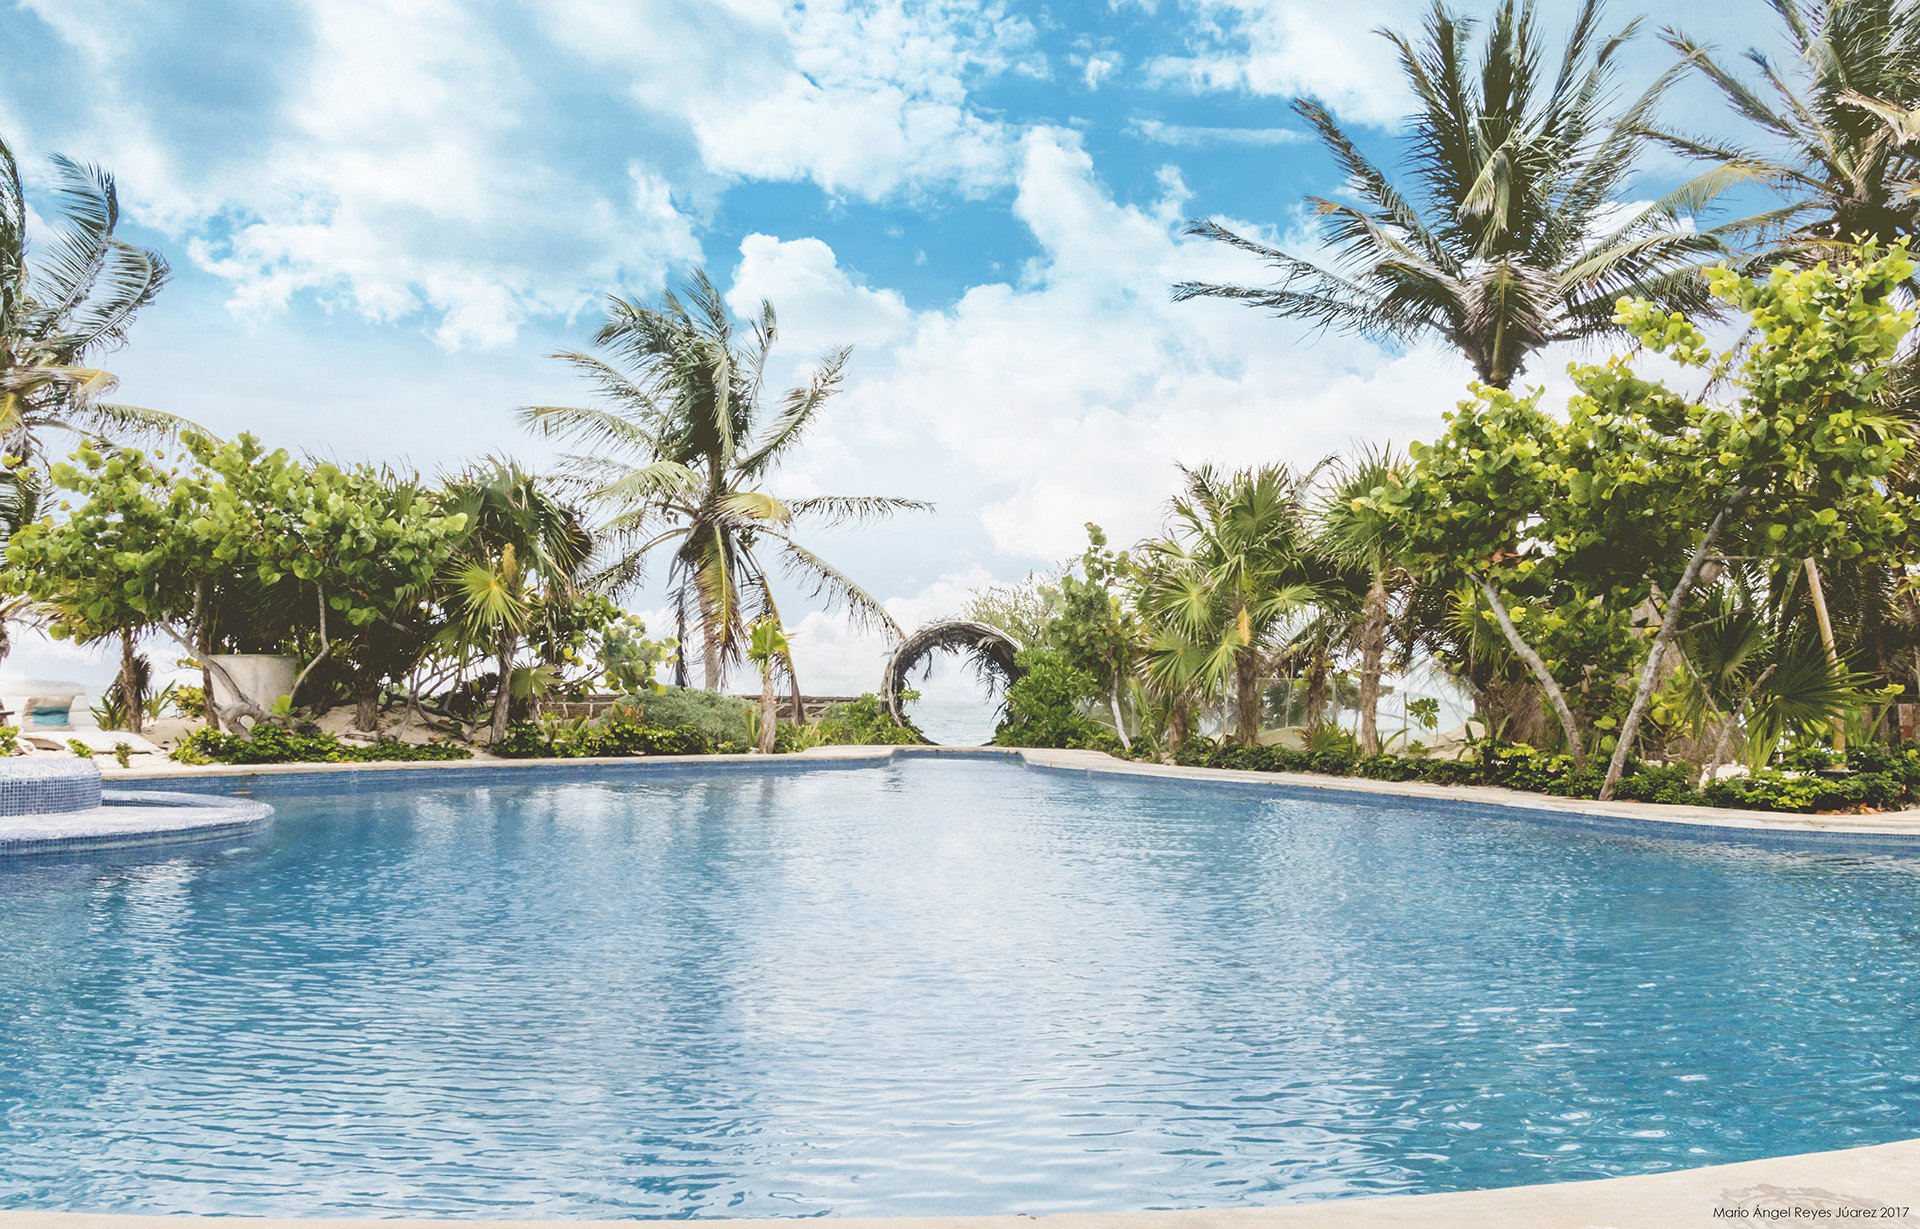 Boutique Hotels Hotels Mexico Tulum swimming pool Resort property water sky tropics arecales palm tree tree leisure caribbean Sea Lagoon vacation real estate tourism estate resort town bay plant computer wallpaper